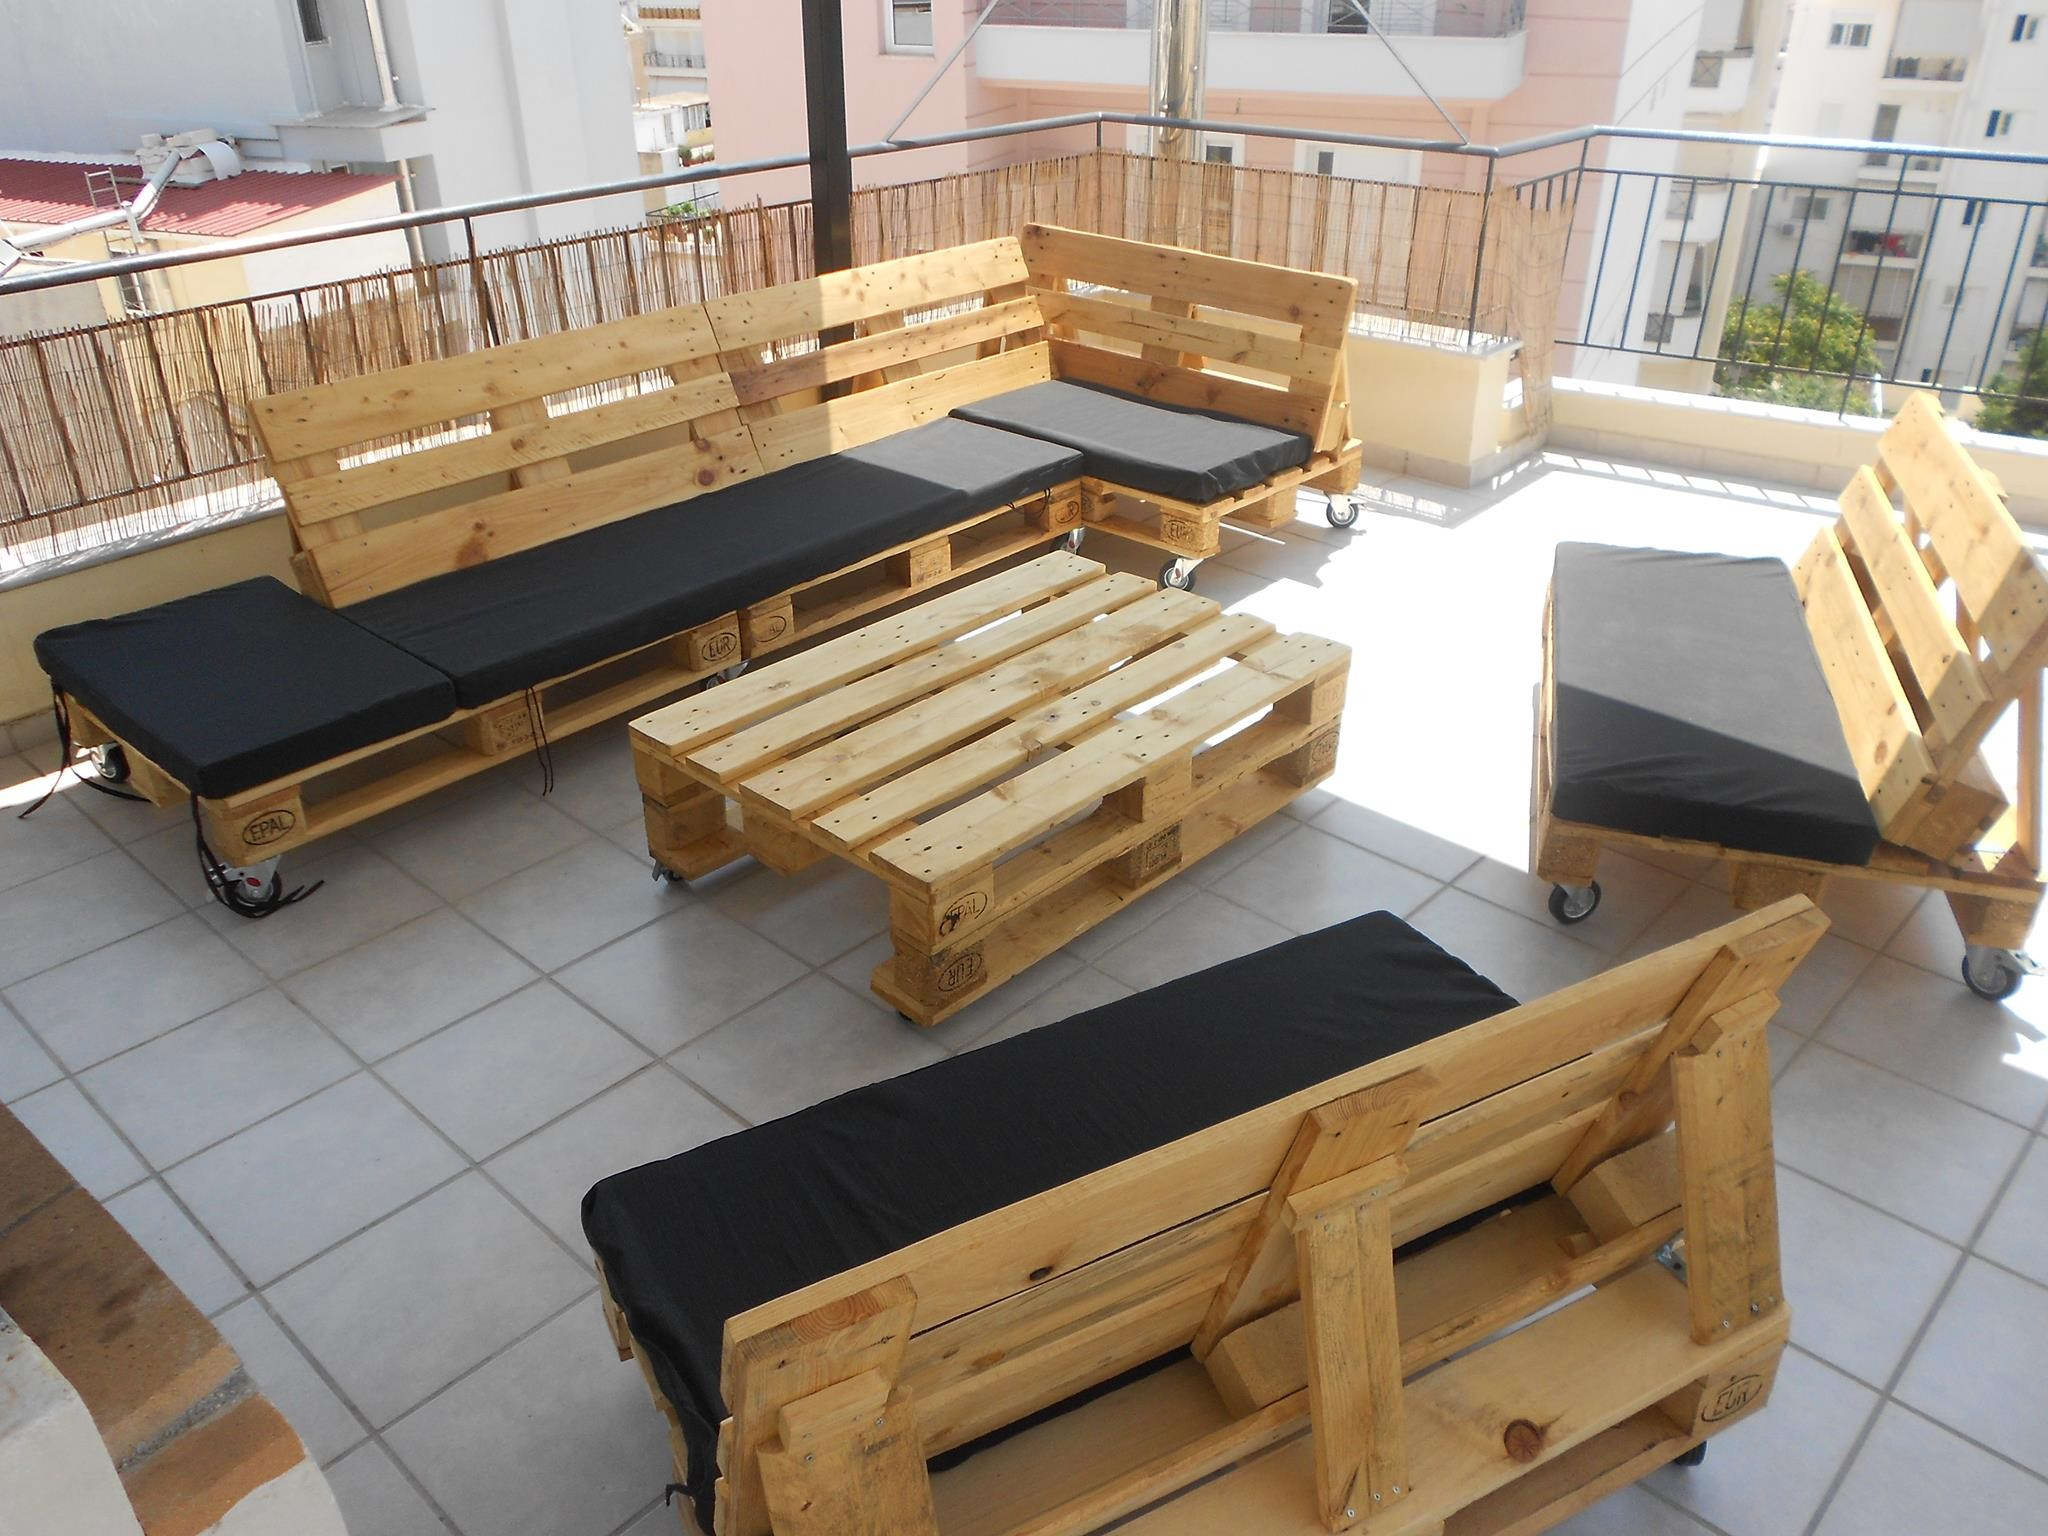 pallet outside furniture. Shocking-wood-pallet-outdoor-furniture-photo-design-awesome-textured Pallet Outside Furniture